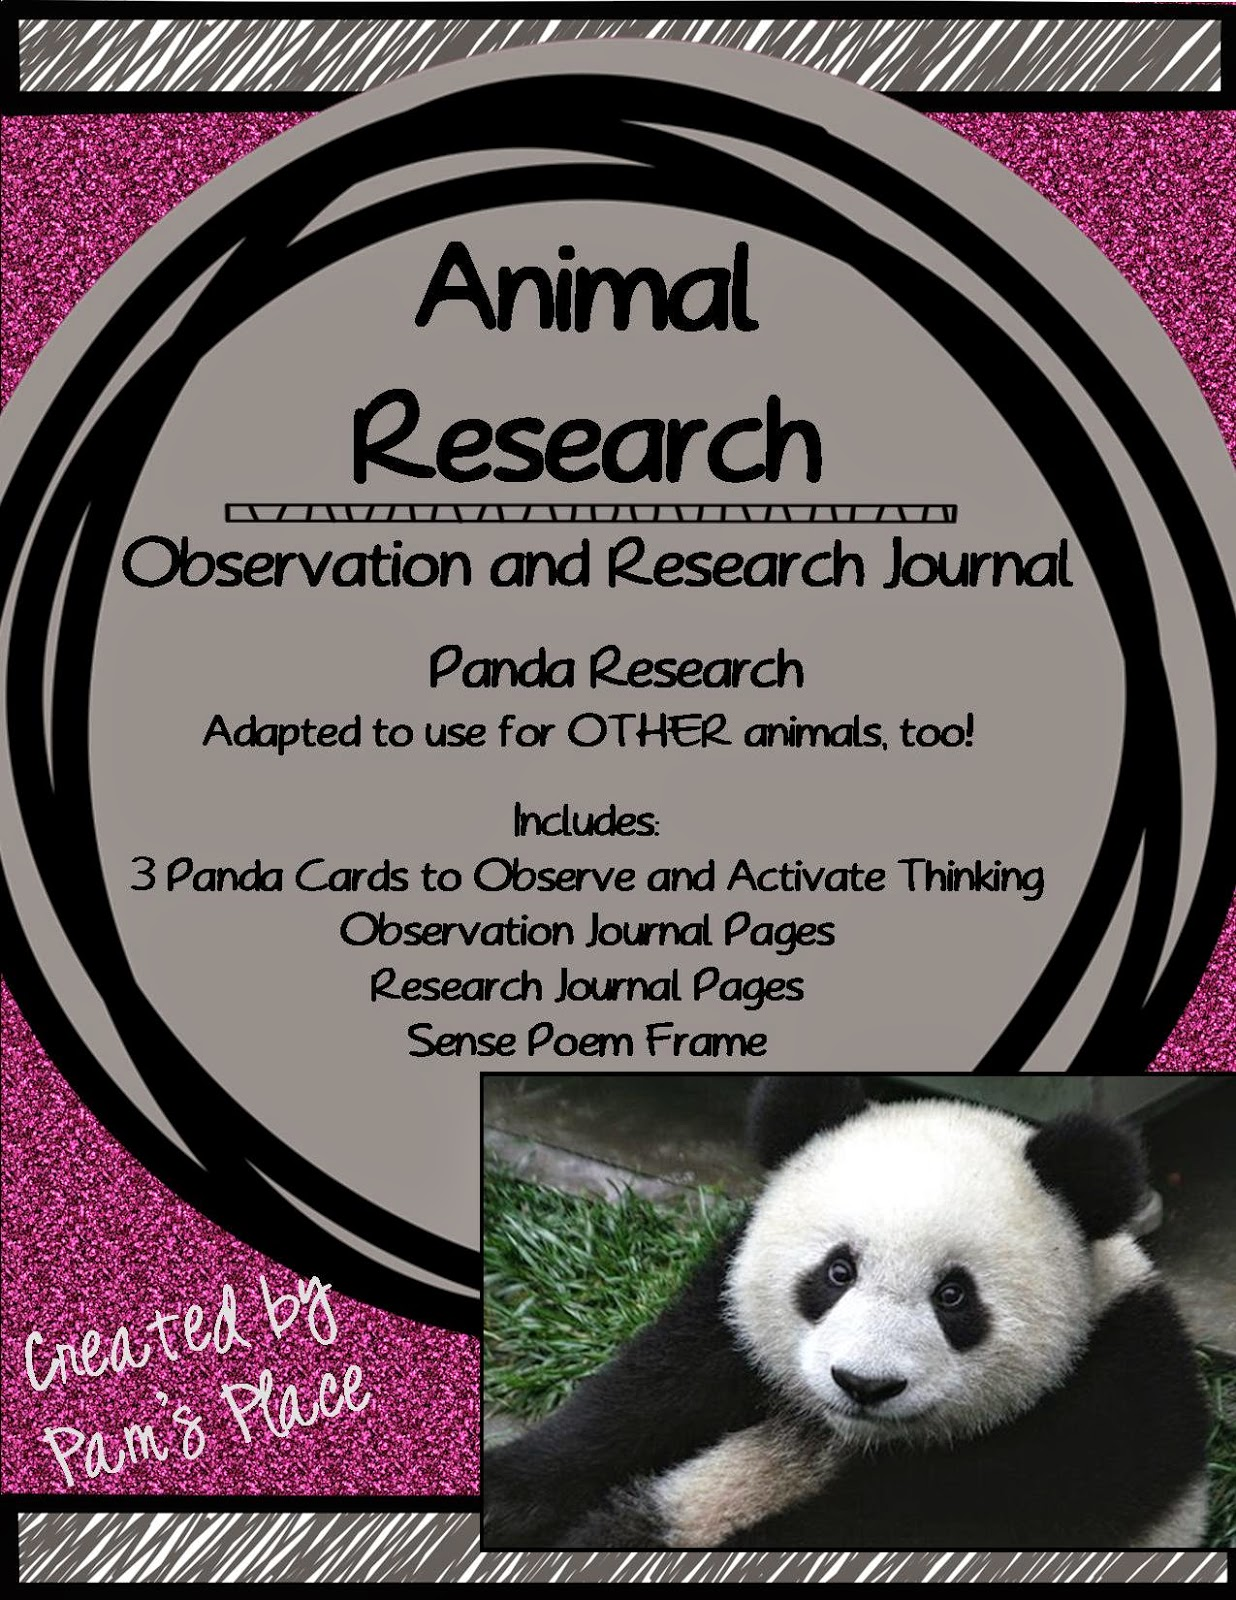 http://www.teacherspayteachers.com/Product/Animal-Research-Observation-and-Research-Journal-PandaAnimal-236913